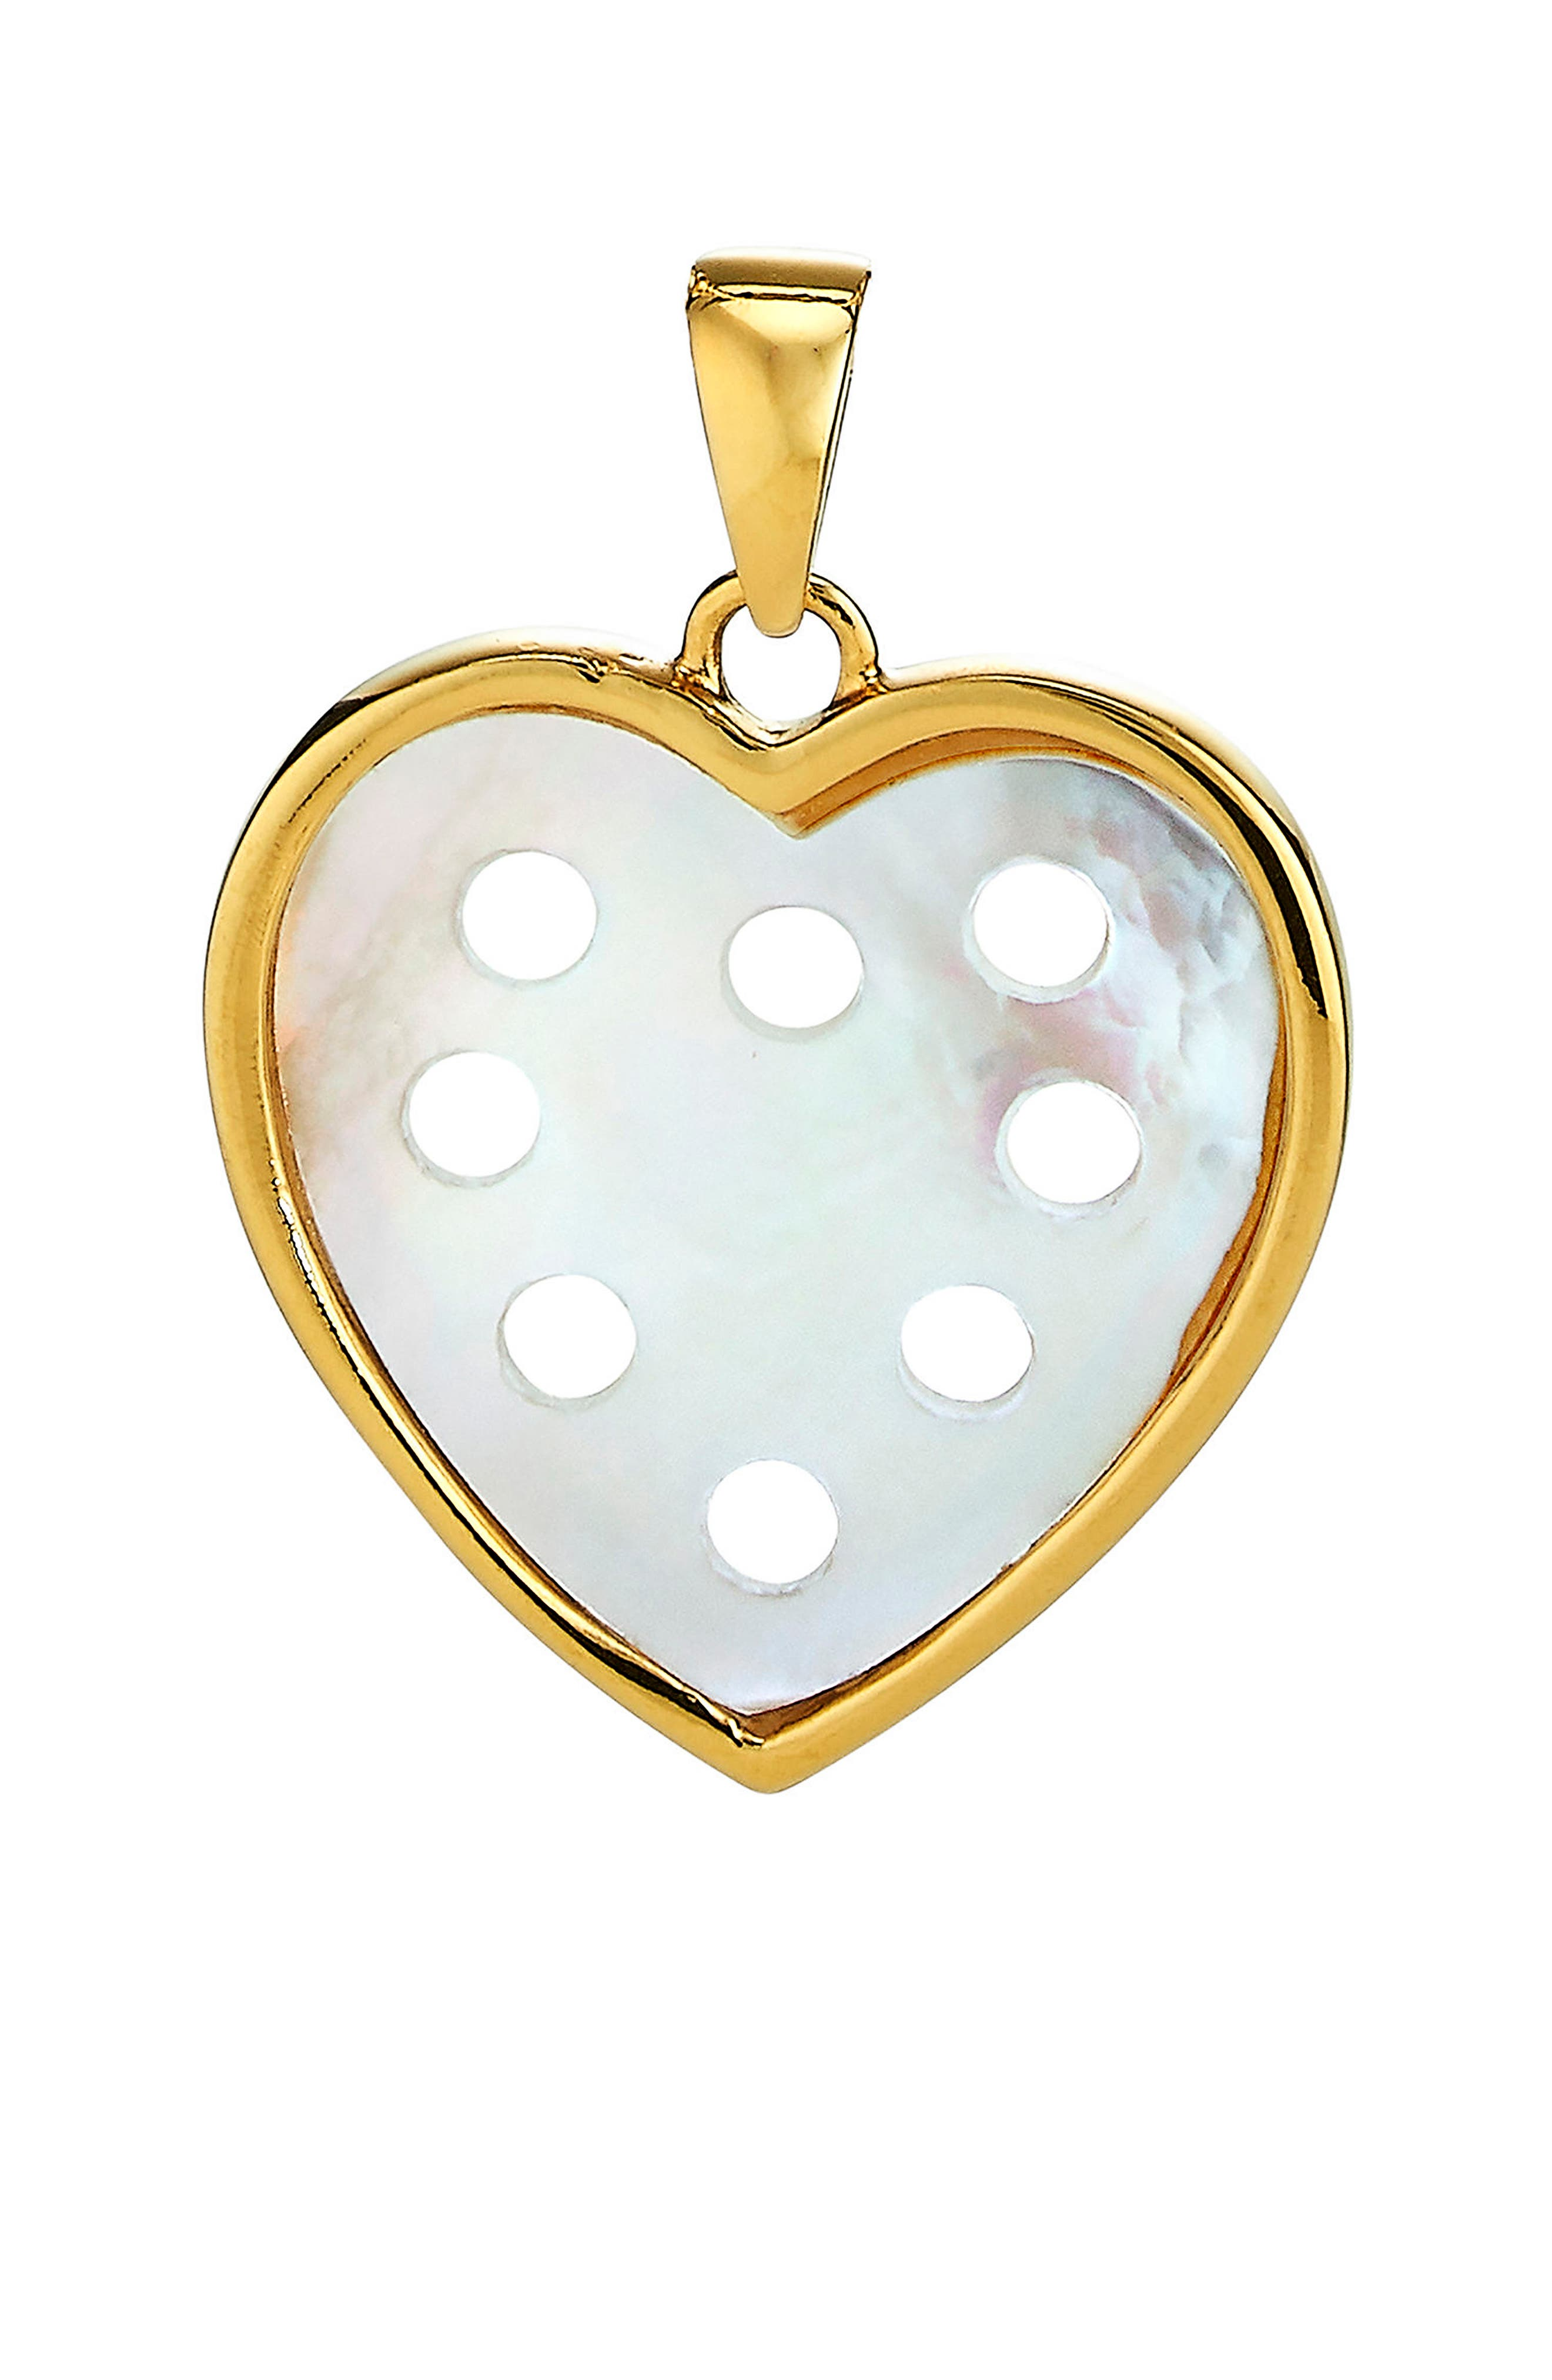 Small Mother-of-Pearl Heart Charm,                             Main thumbnail 1, color,                             Gold - Mother Of Pearl